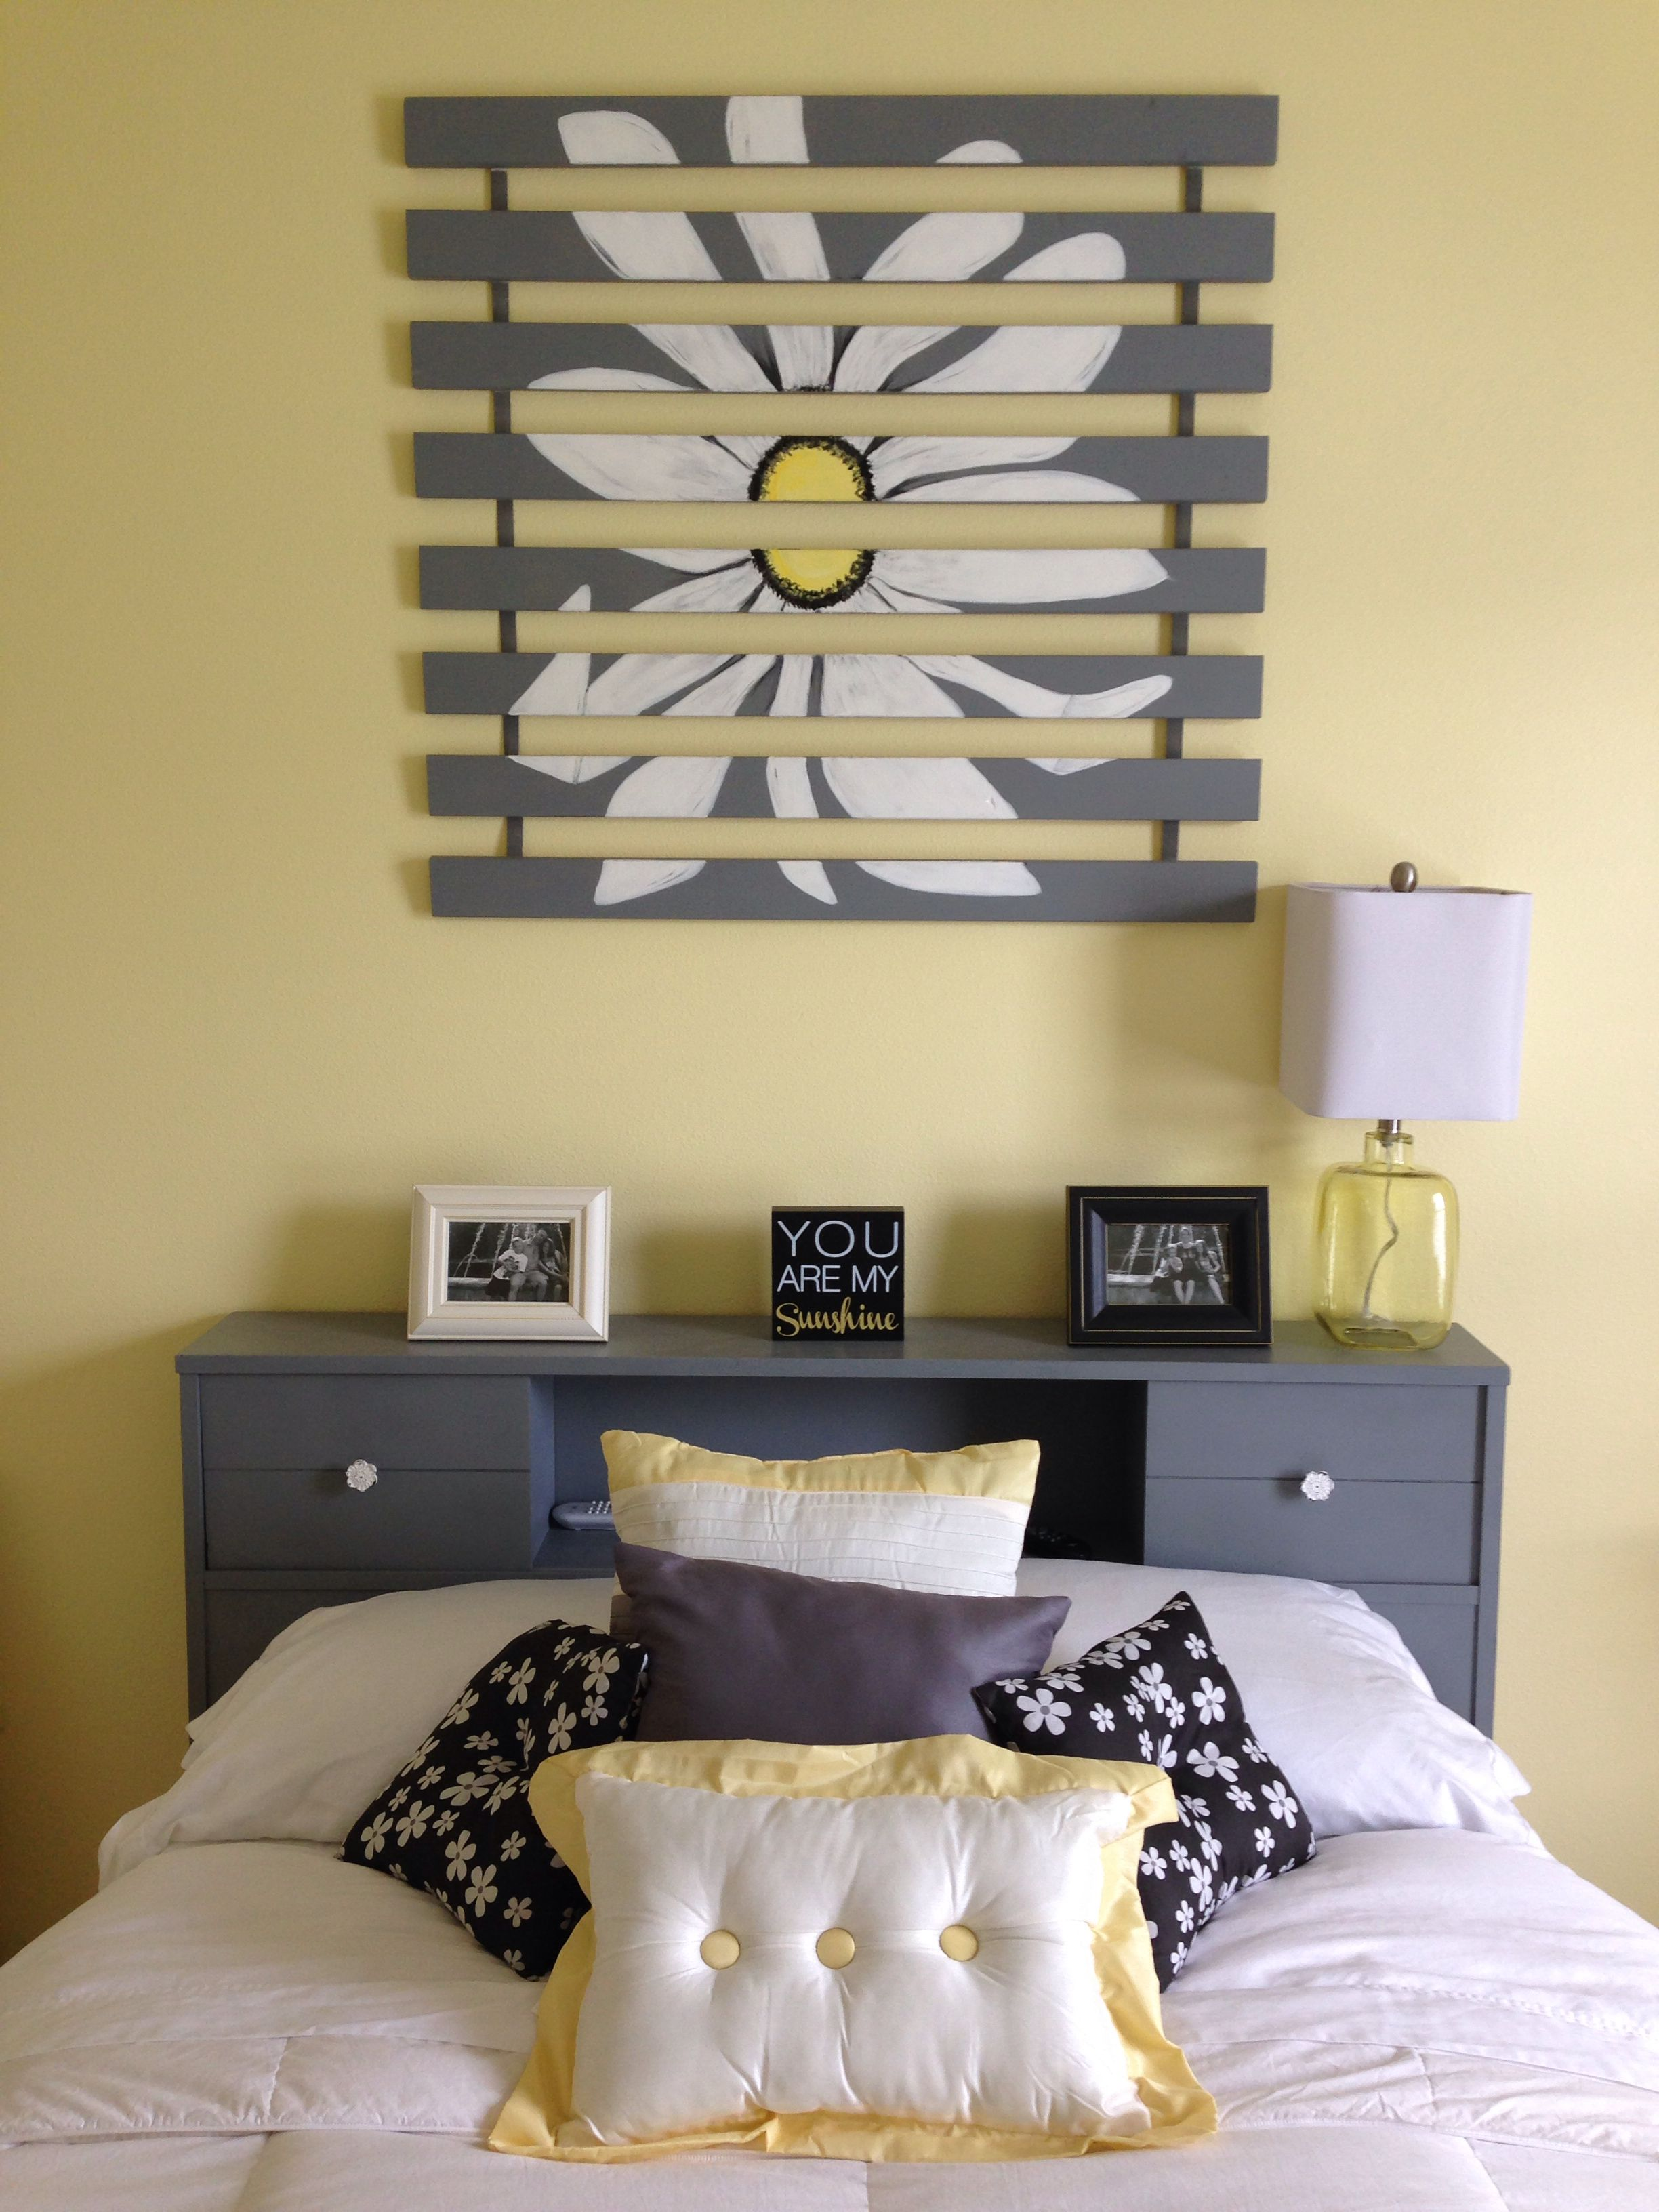 IKEA bed slats recycled | Completed Projects | Pinterest | Ikea bed ...